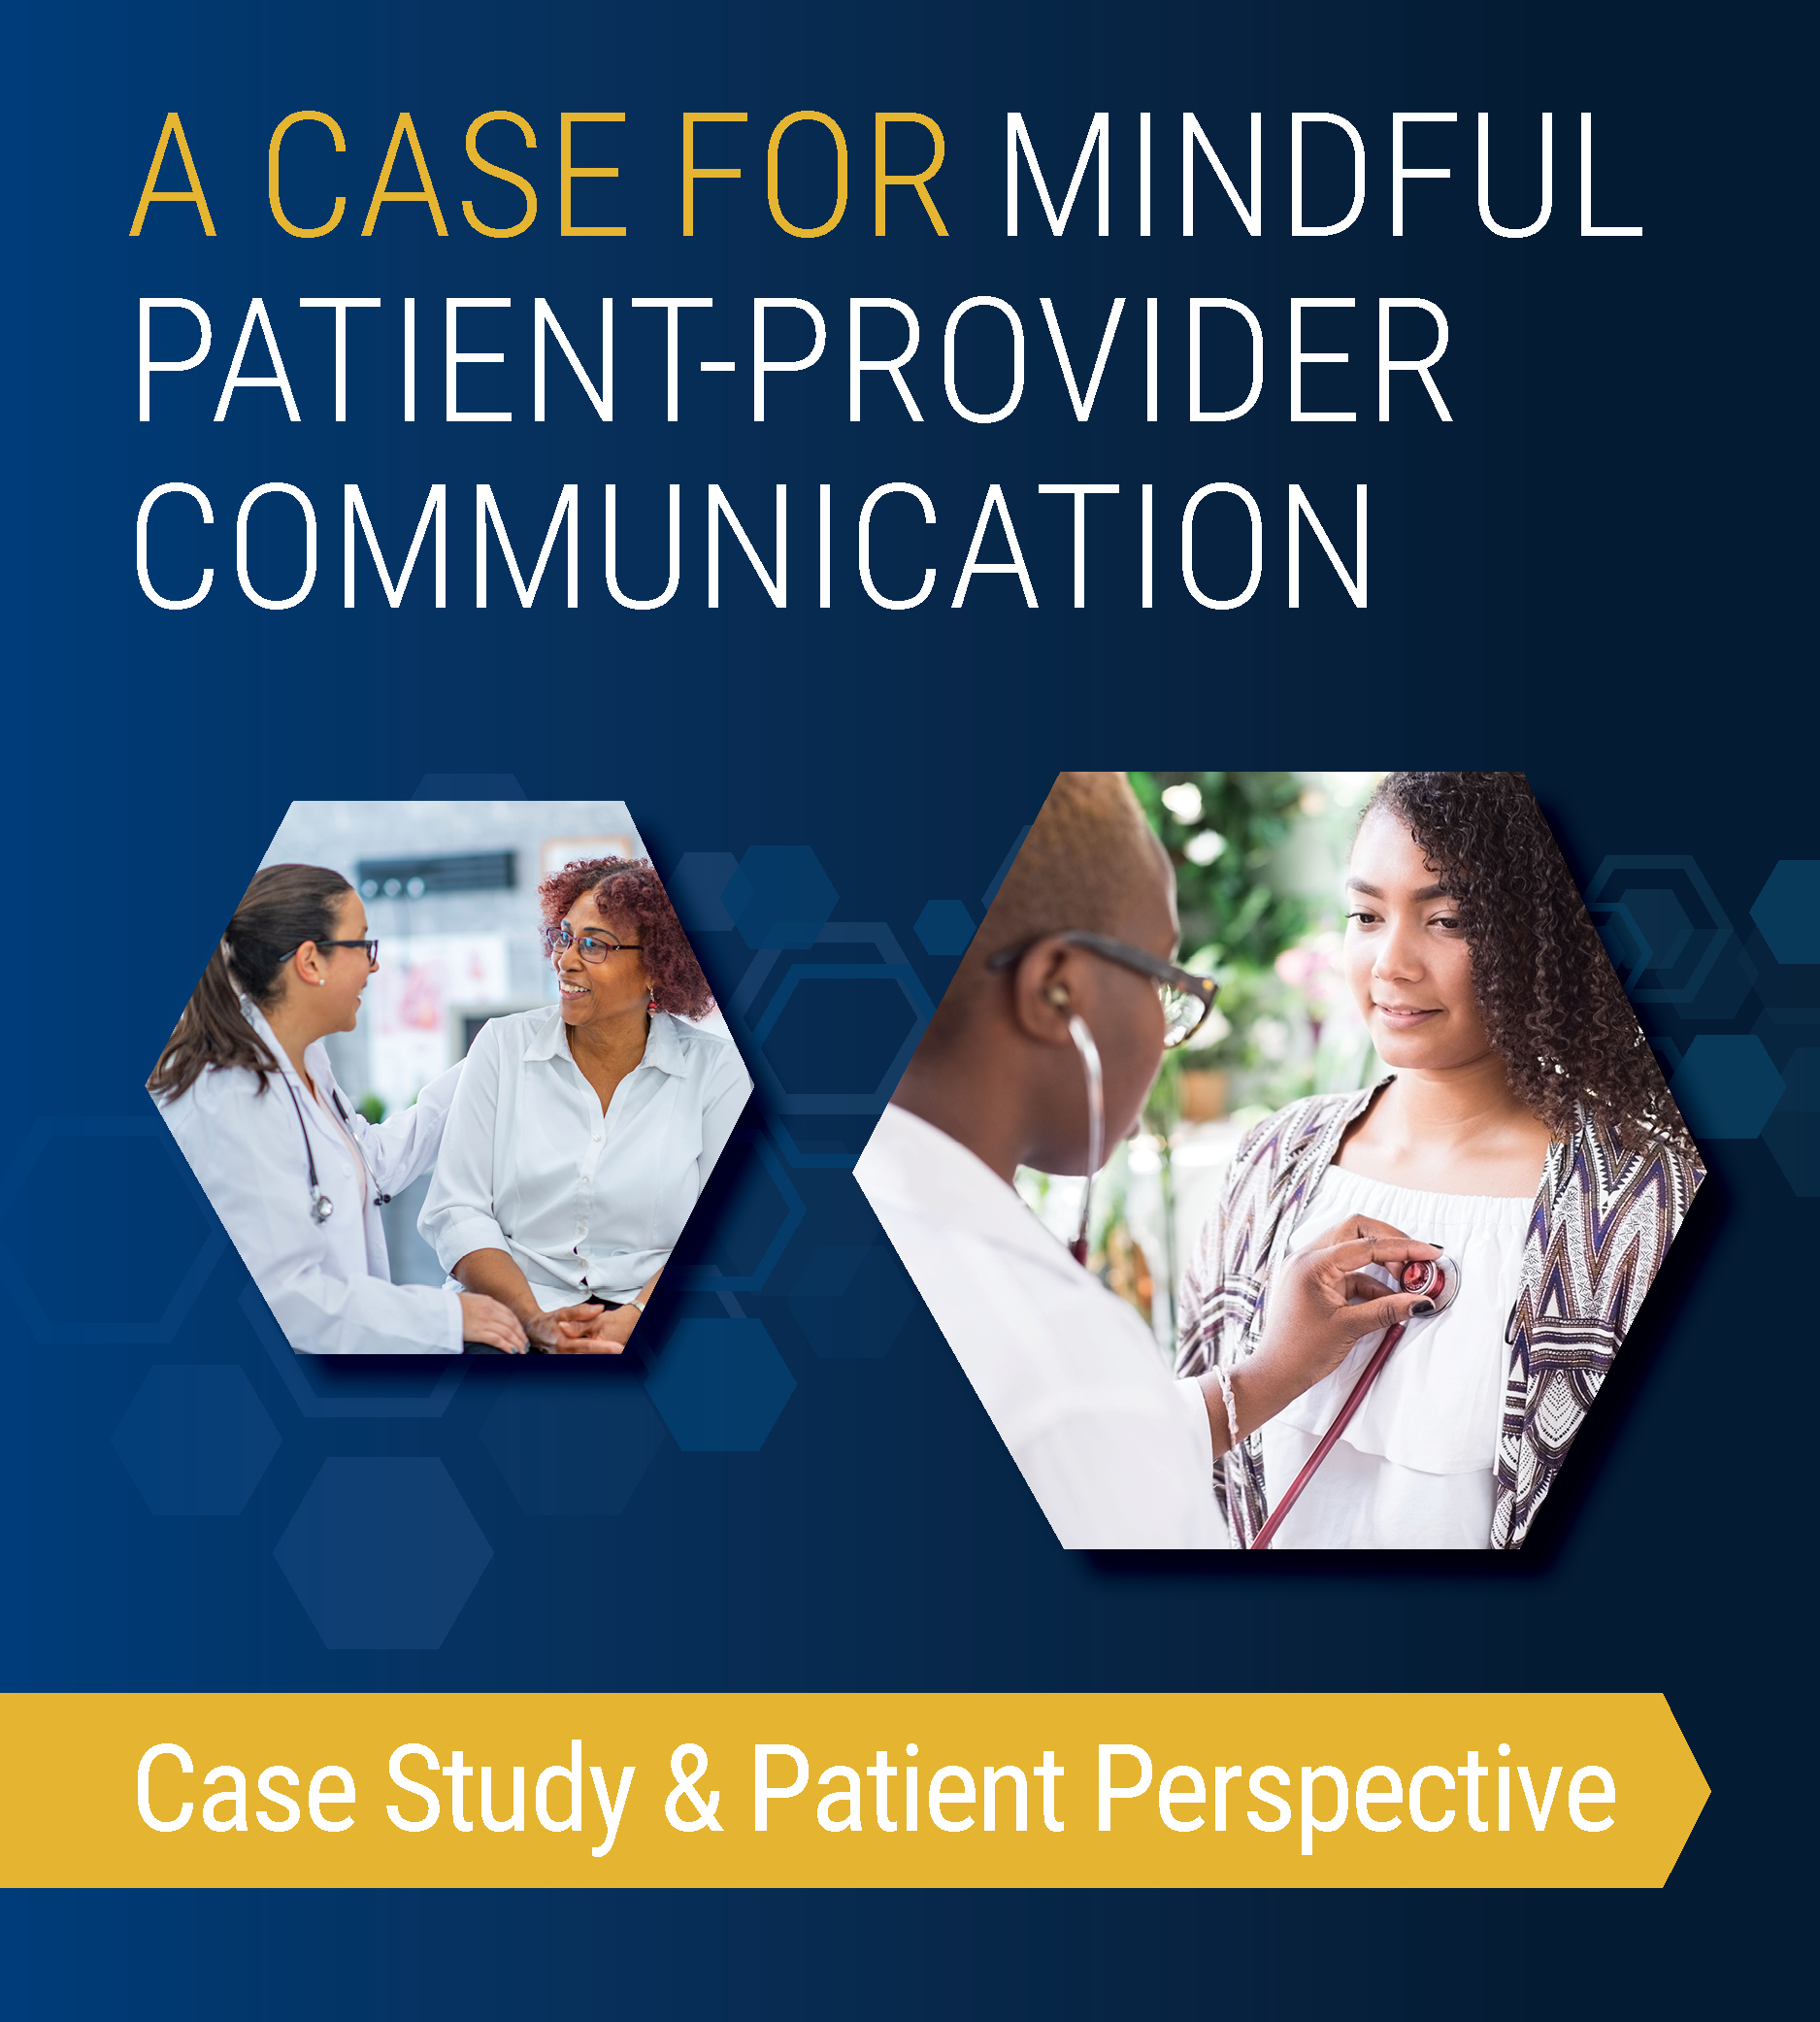 A Case for Mindful Patient-Provider Communication